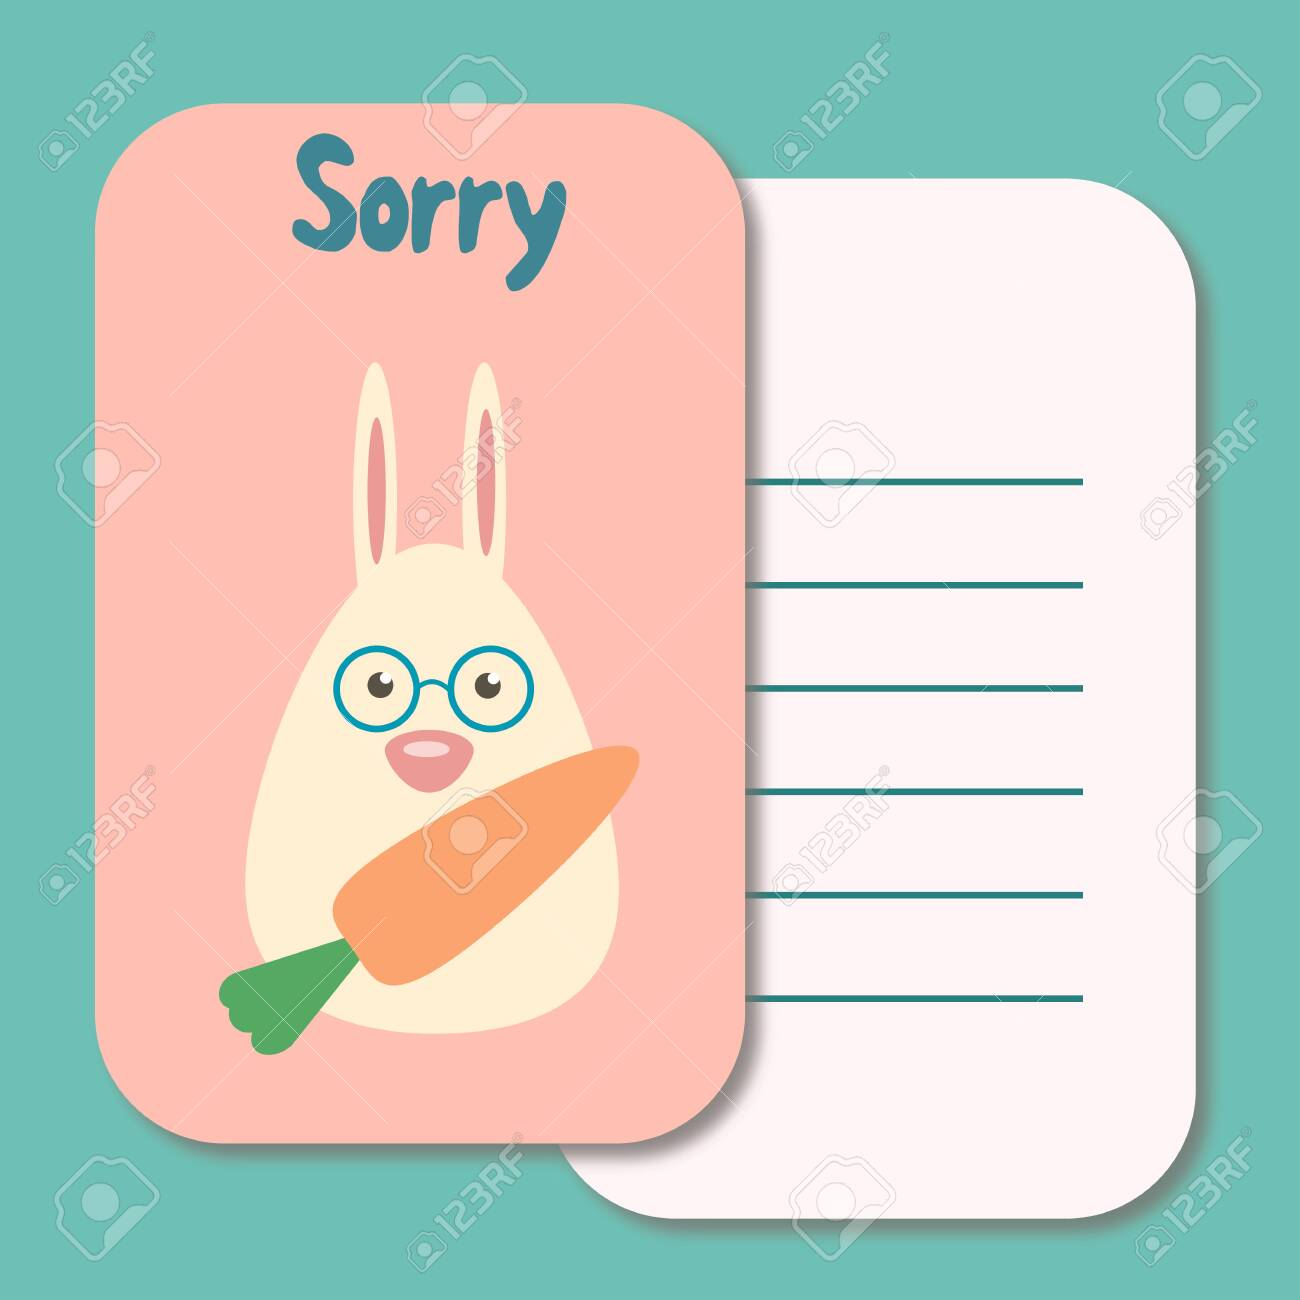 photograph relating to Printable Sorry Card titled Lovable printable instance sorry card typography style history..